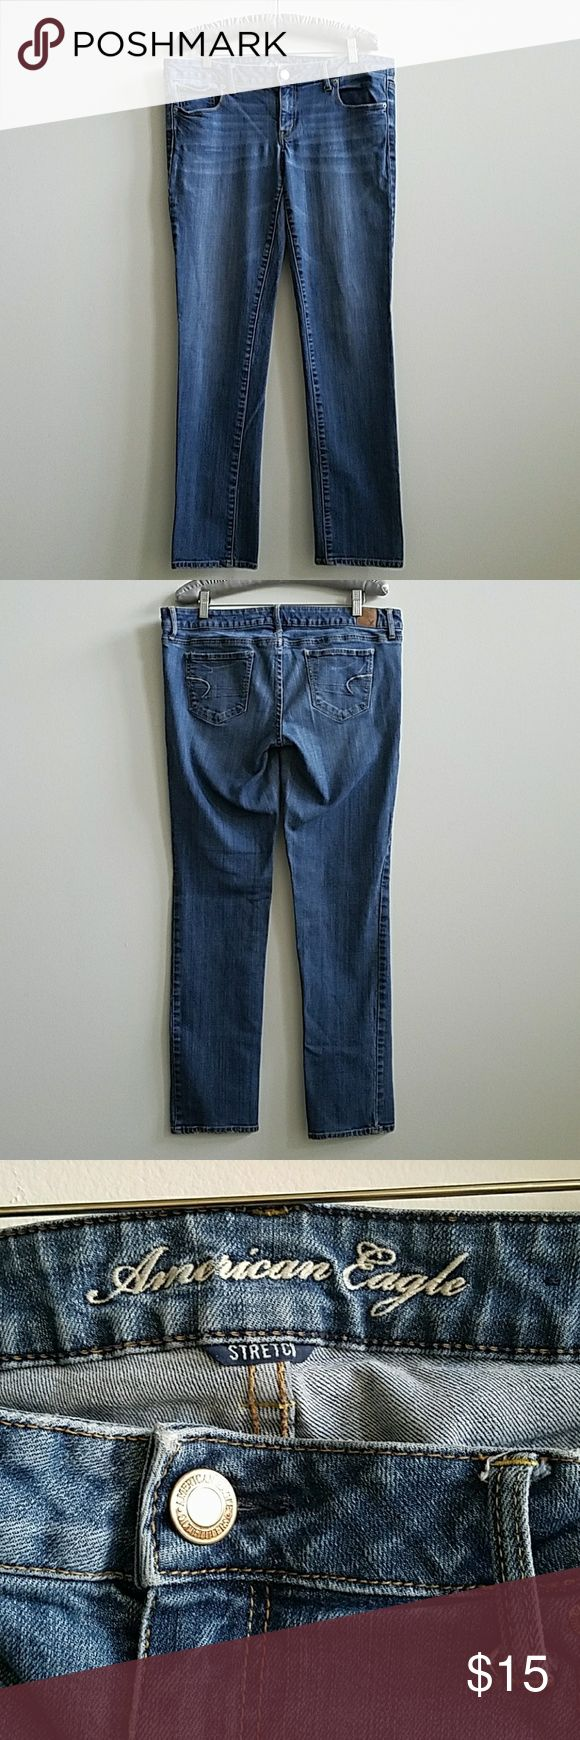 """Americn Eagle Skinny Stretch Jeans Size 14 Reg In GUC, they're 99% cotton & 1% spandex. Measurements: waist 17"""", rise 8"""", inseam 30"""" and the bottom leg opening is 7"""" & the hips are 17"""". American Eagle Outfitters Jeans Skinny"""